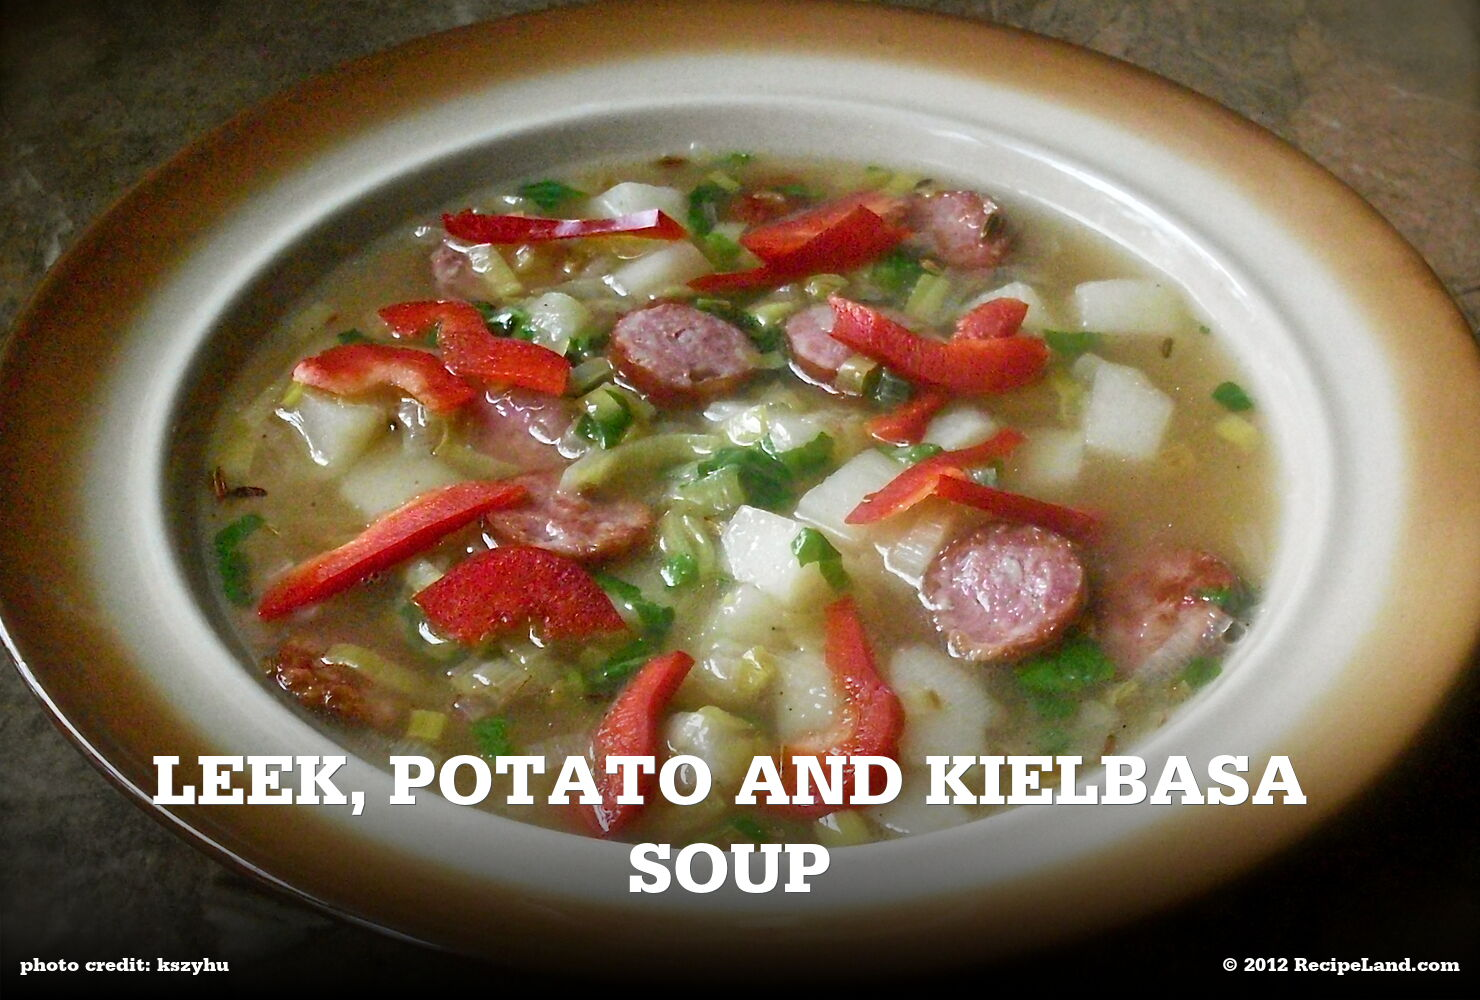 Leek, Potato and Kielbasa Soup